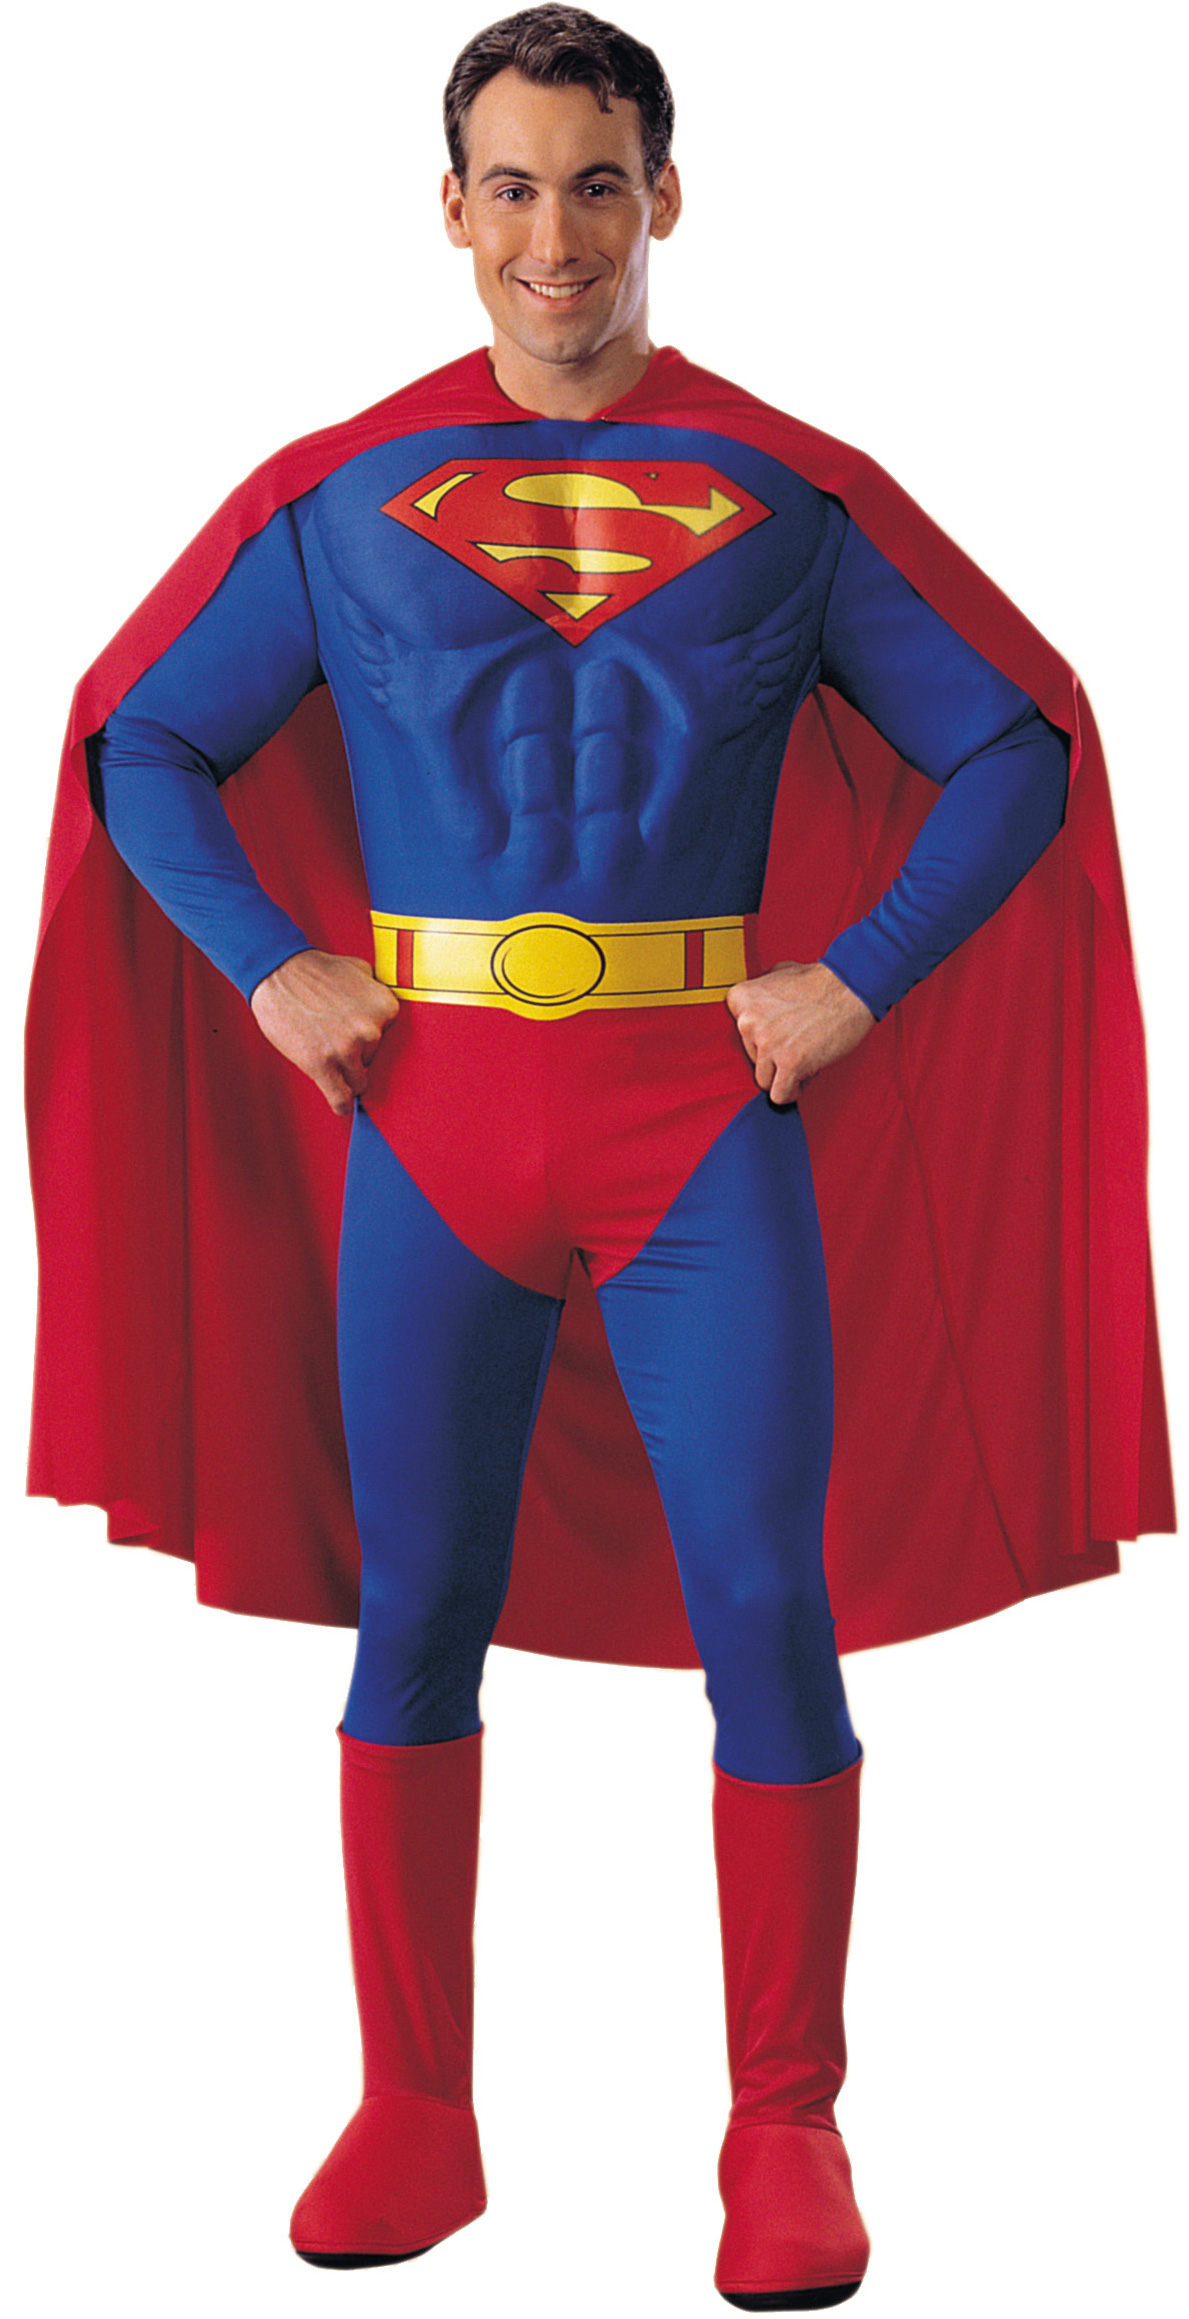 d233guisement superman homme costume super h233ros superman